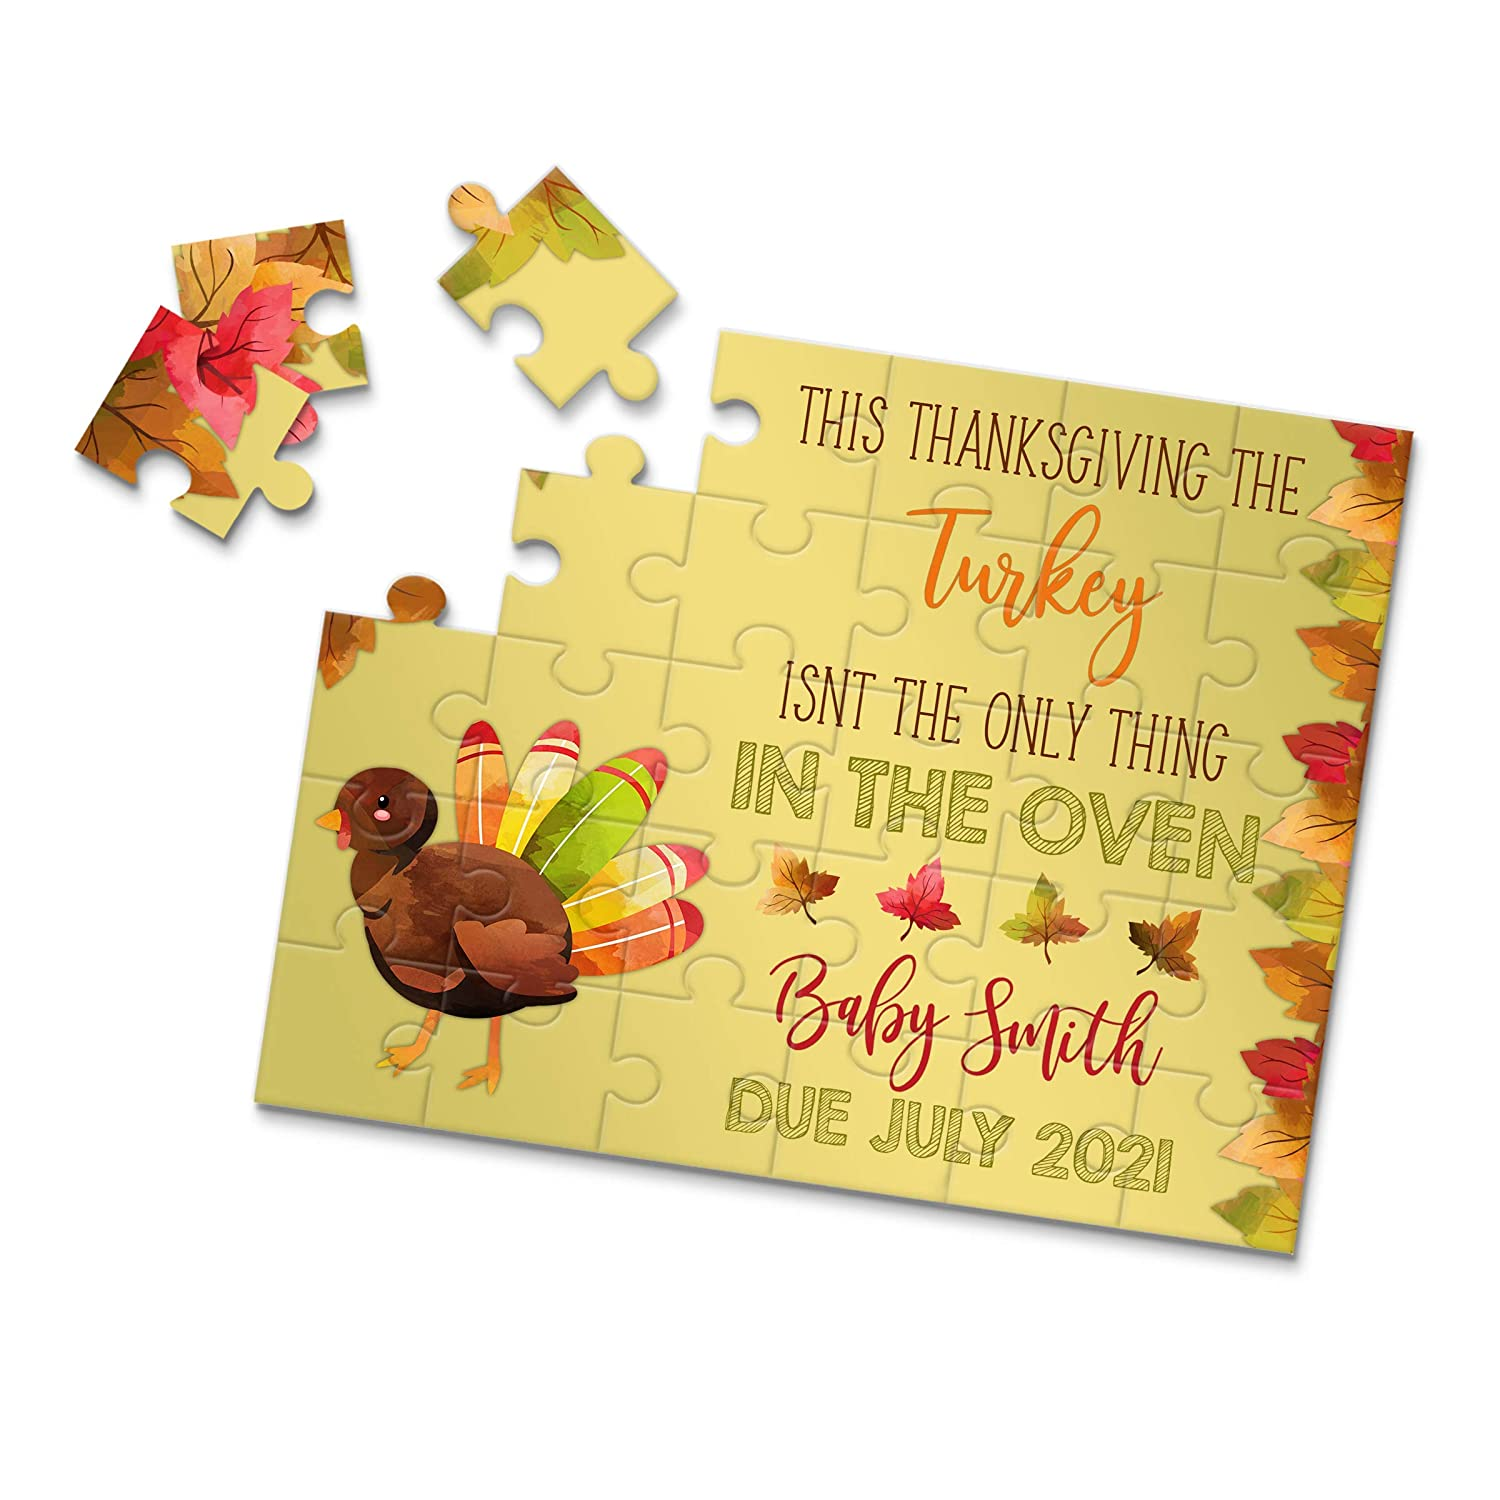 P2354 Having a baby Announcement Ideas Baby Announcement Thanksgiving Themed Pregnancy Announcement Puzzle- Pregnancy Reveal